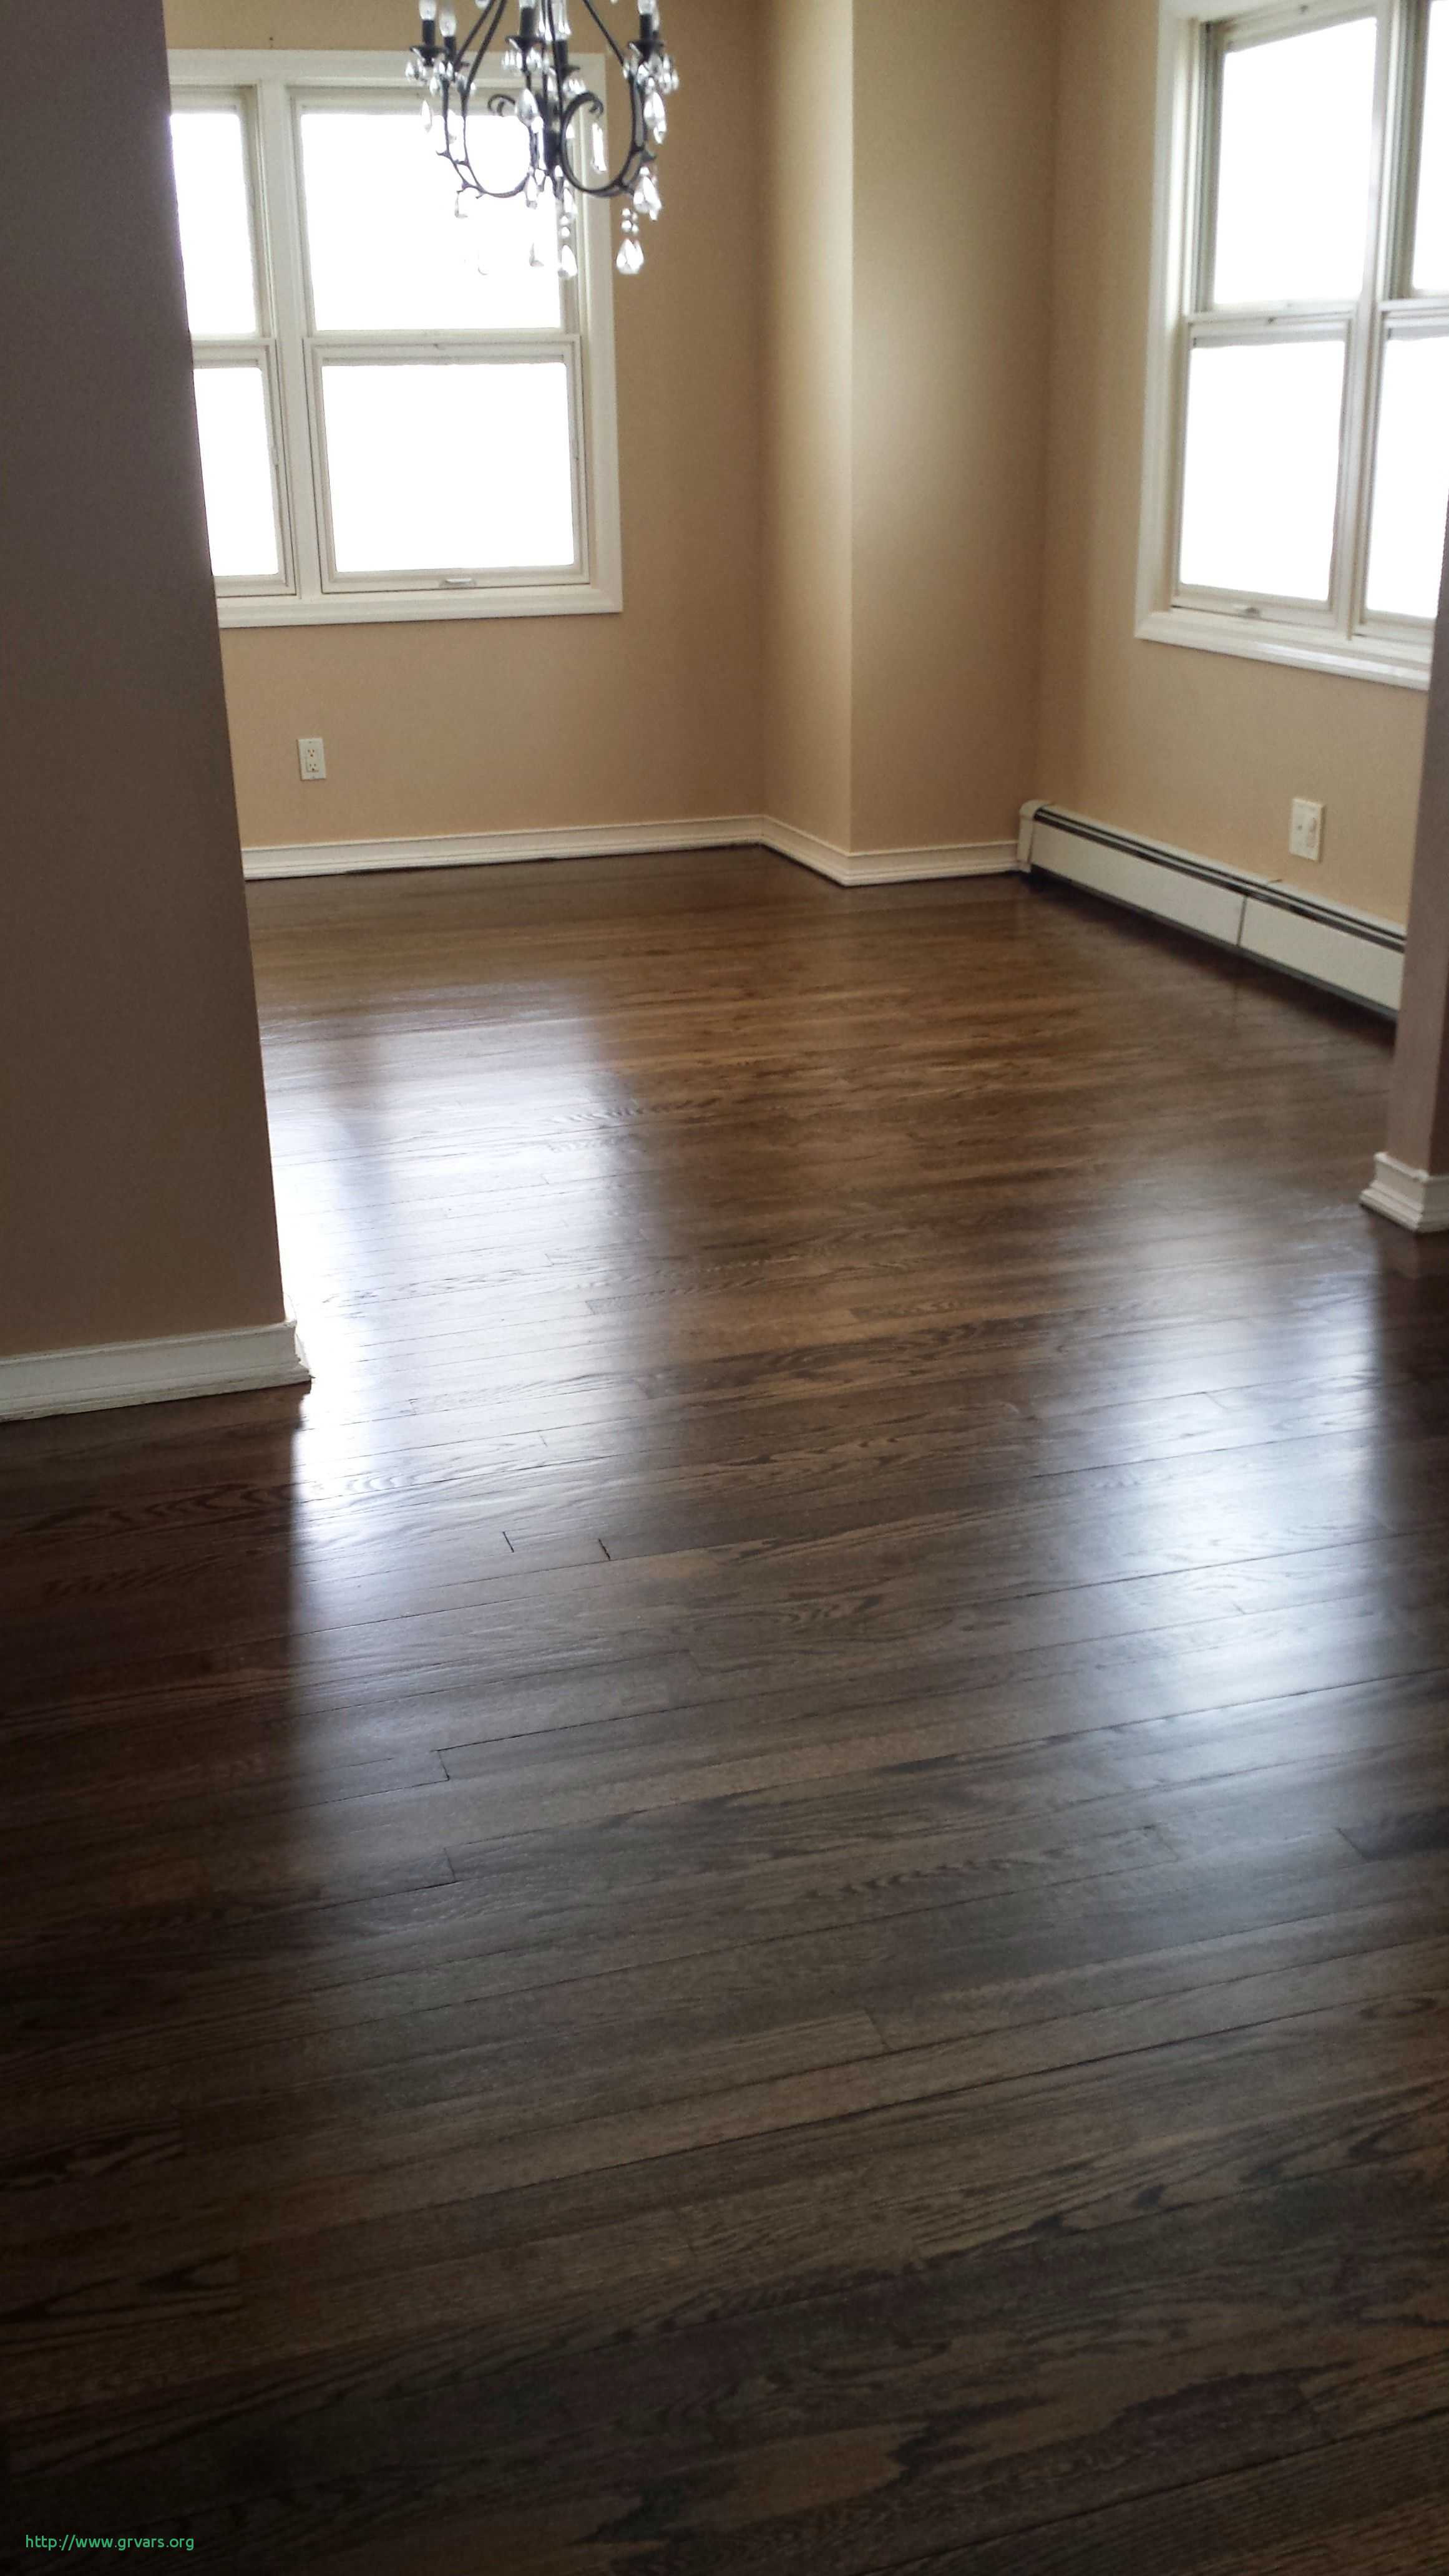 diy hardwood floor cleaner of 20 charmant how to refinish hardwood floors cheap ideas blog inside how to refinish hardwood floors cheap luxe amusing refinishingod floors diy network refinish parquet without